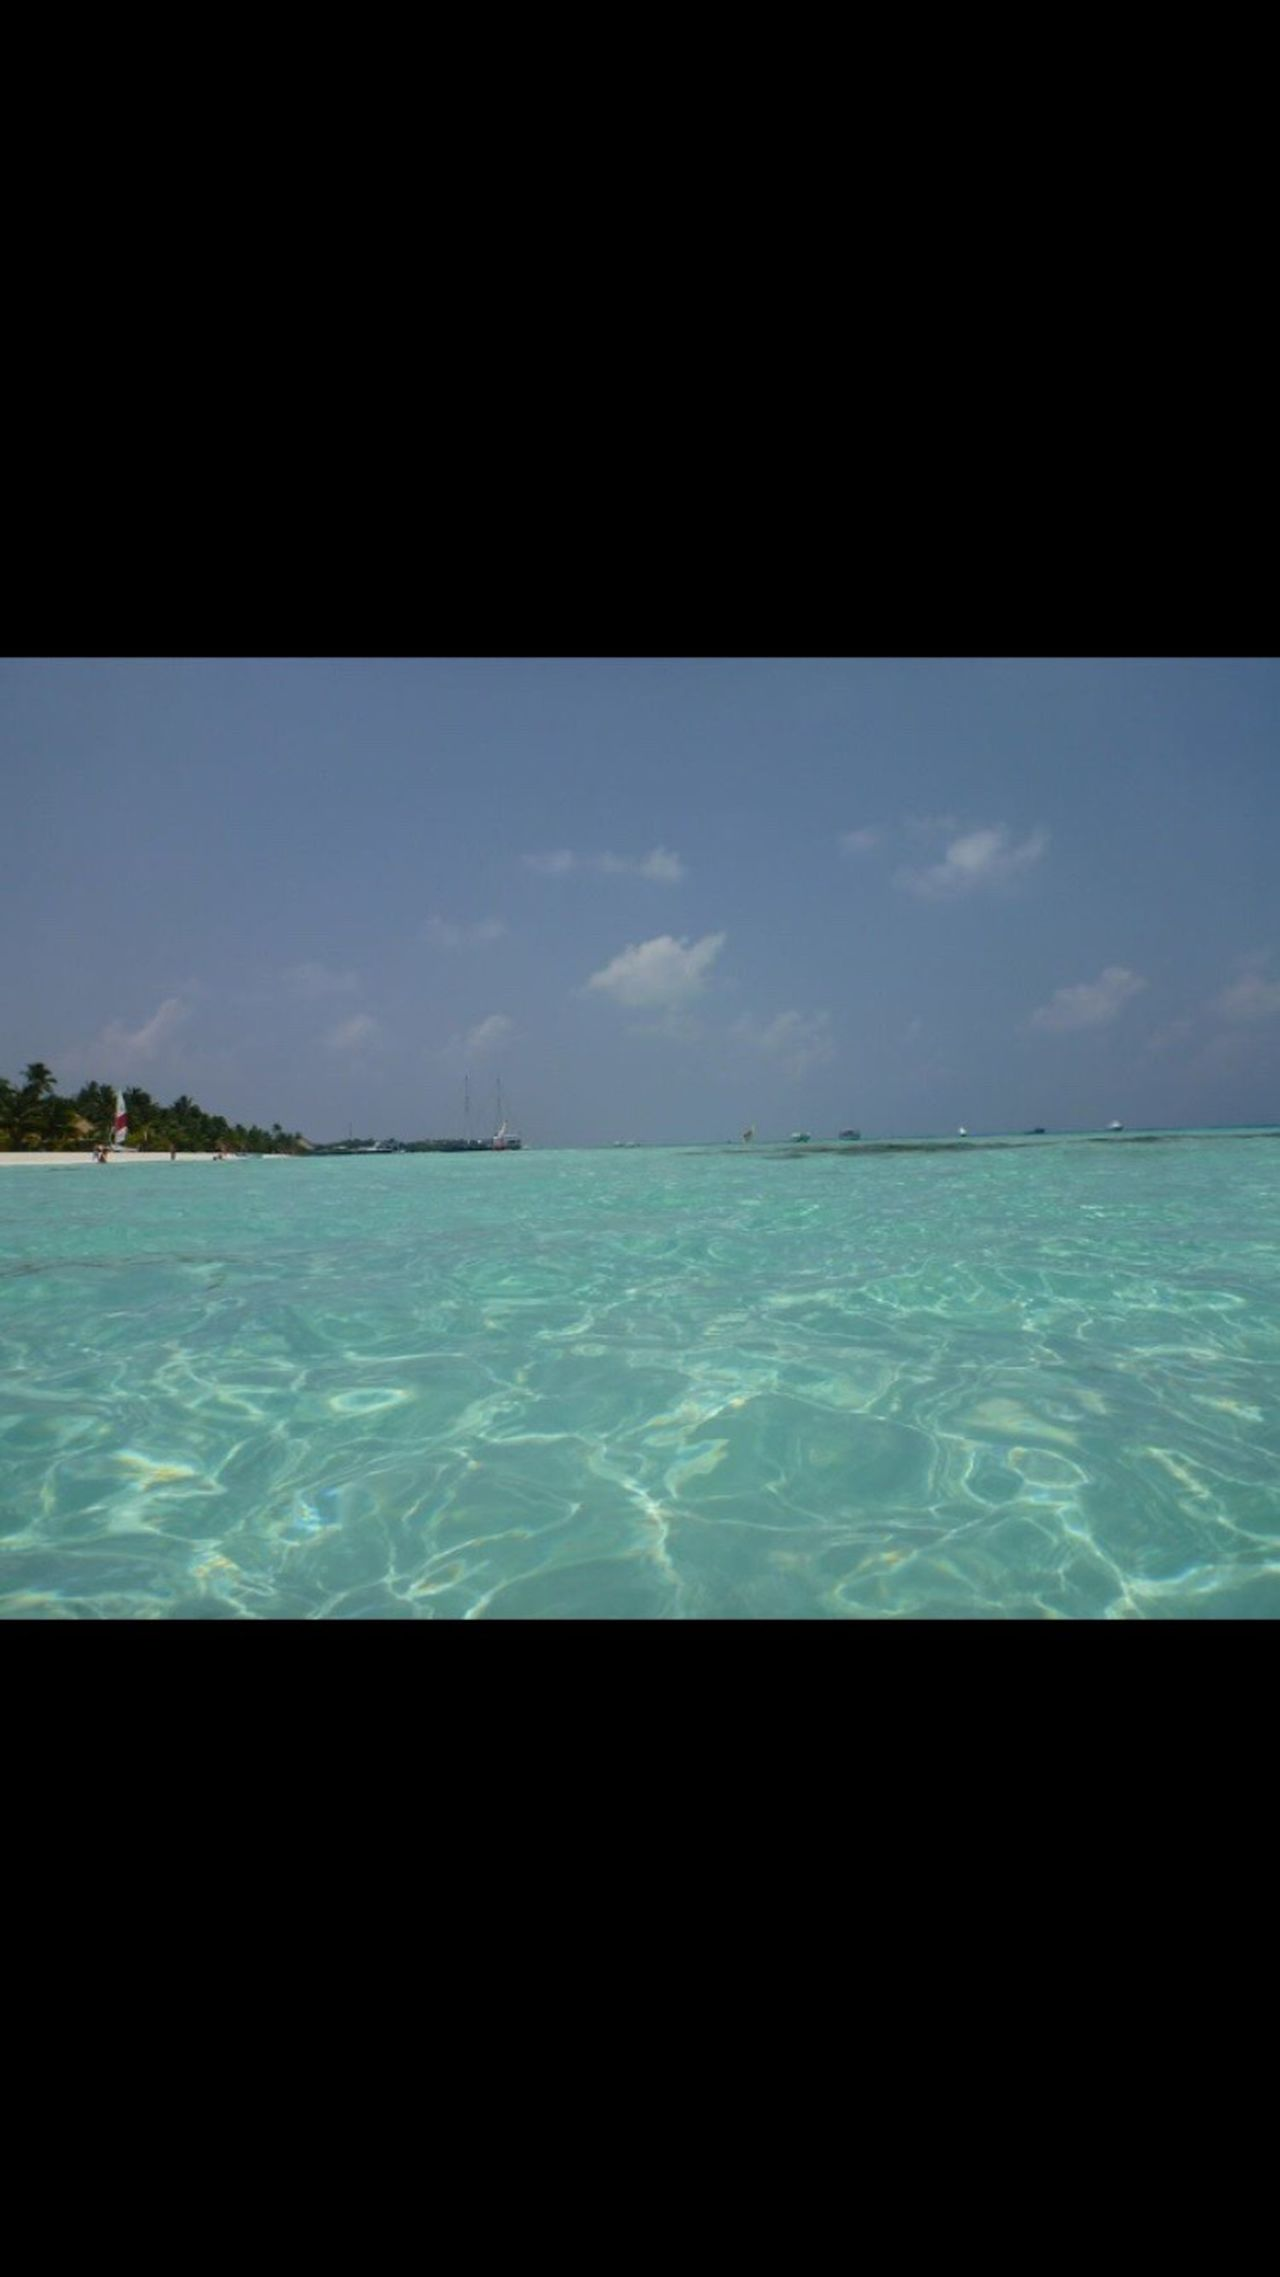 Maldives Turquoise Sea Water Beauty In Nature Horizon Over Water Blue Sky Beach No People Holiday Amazing Wonderful Place Swimming Crystal Clear Waters Fun